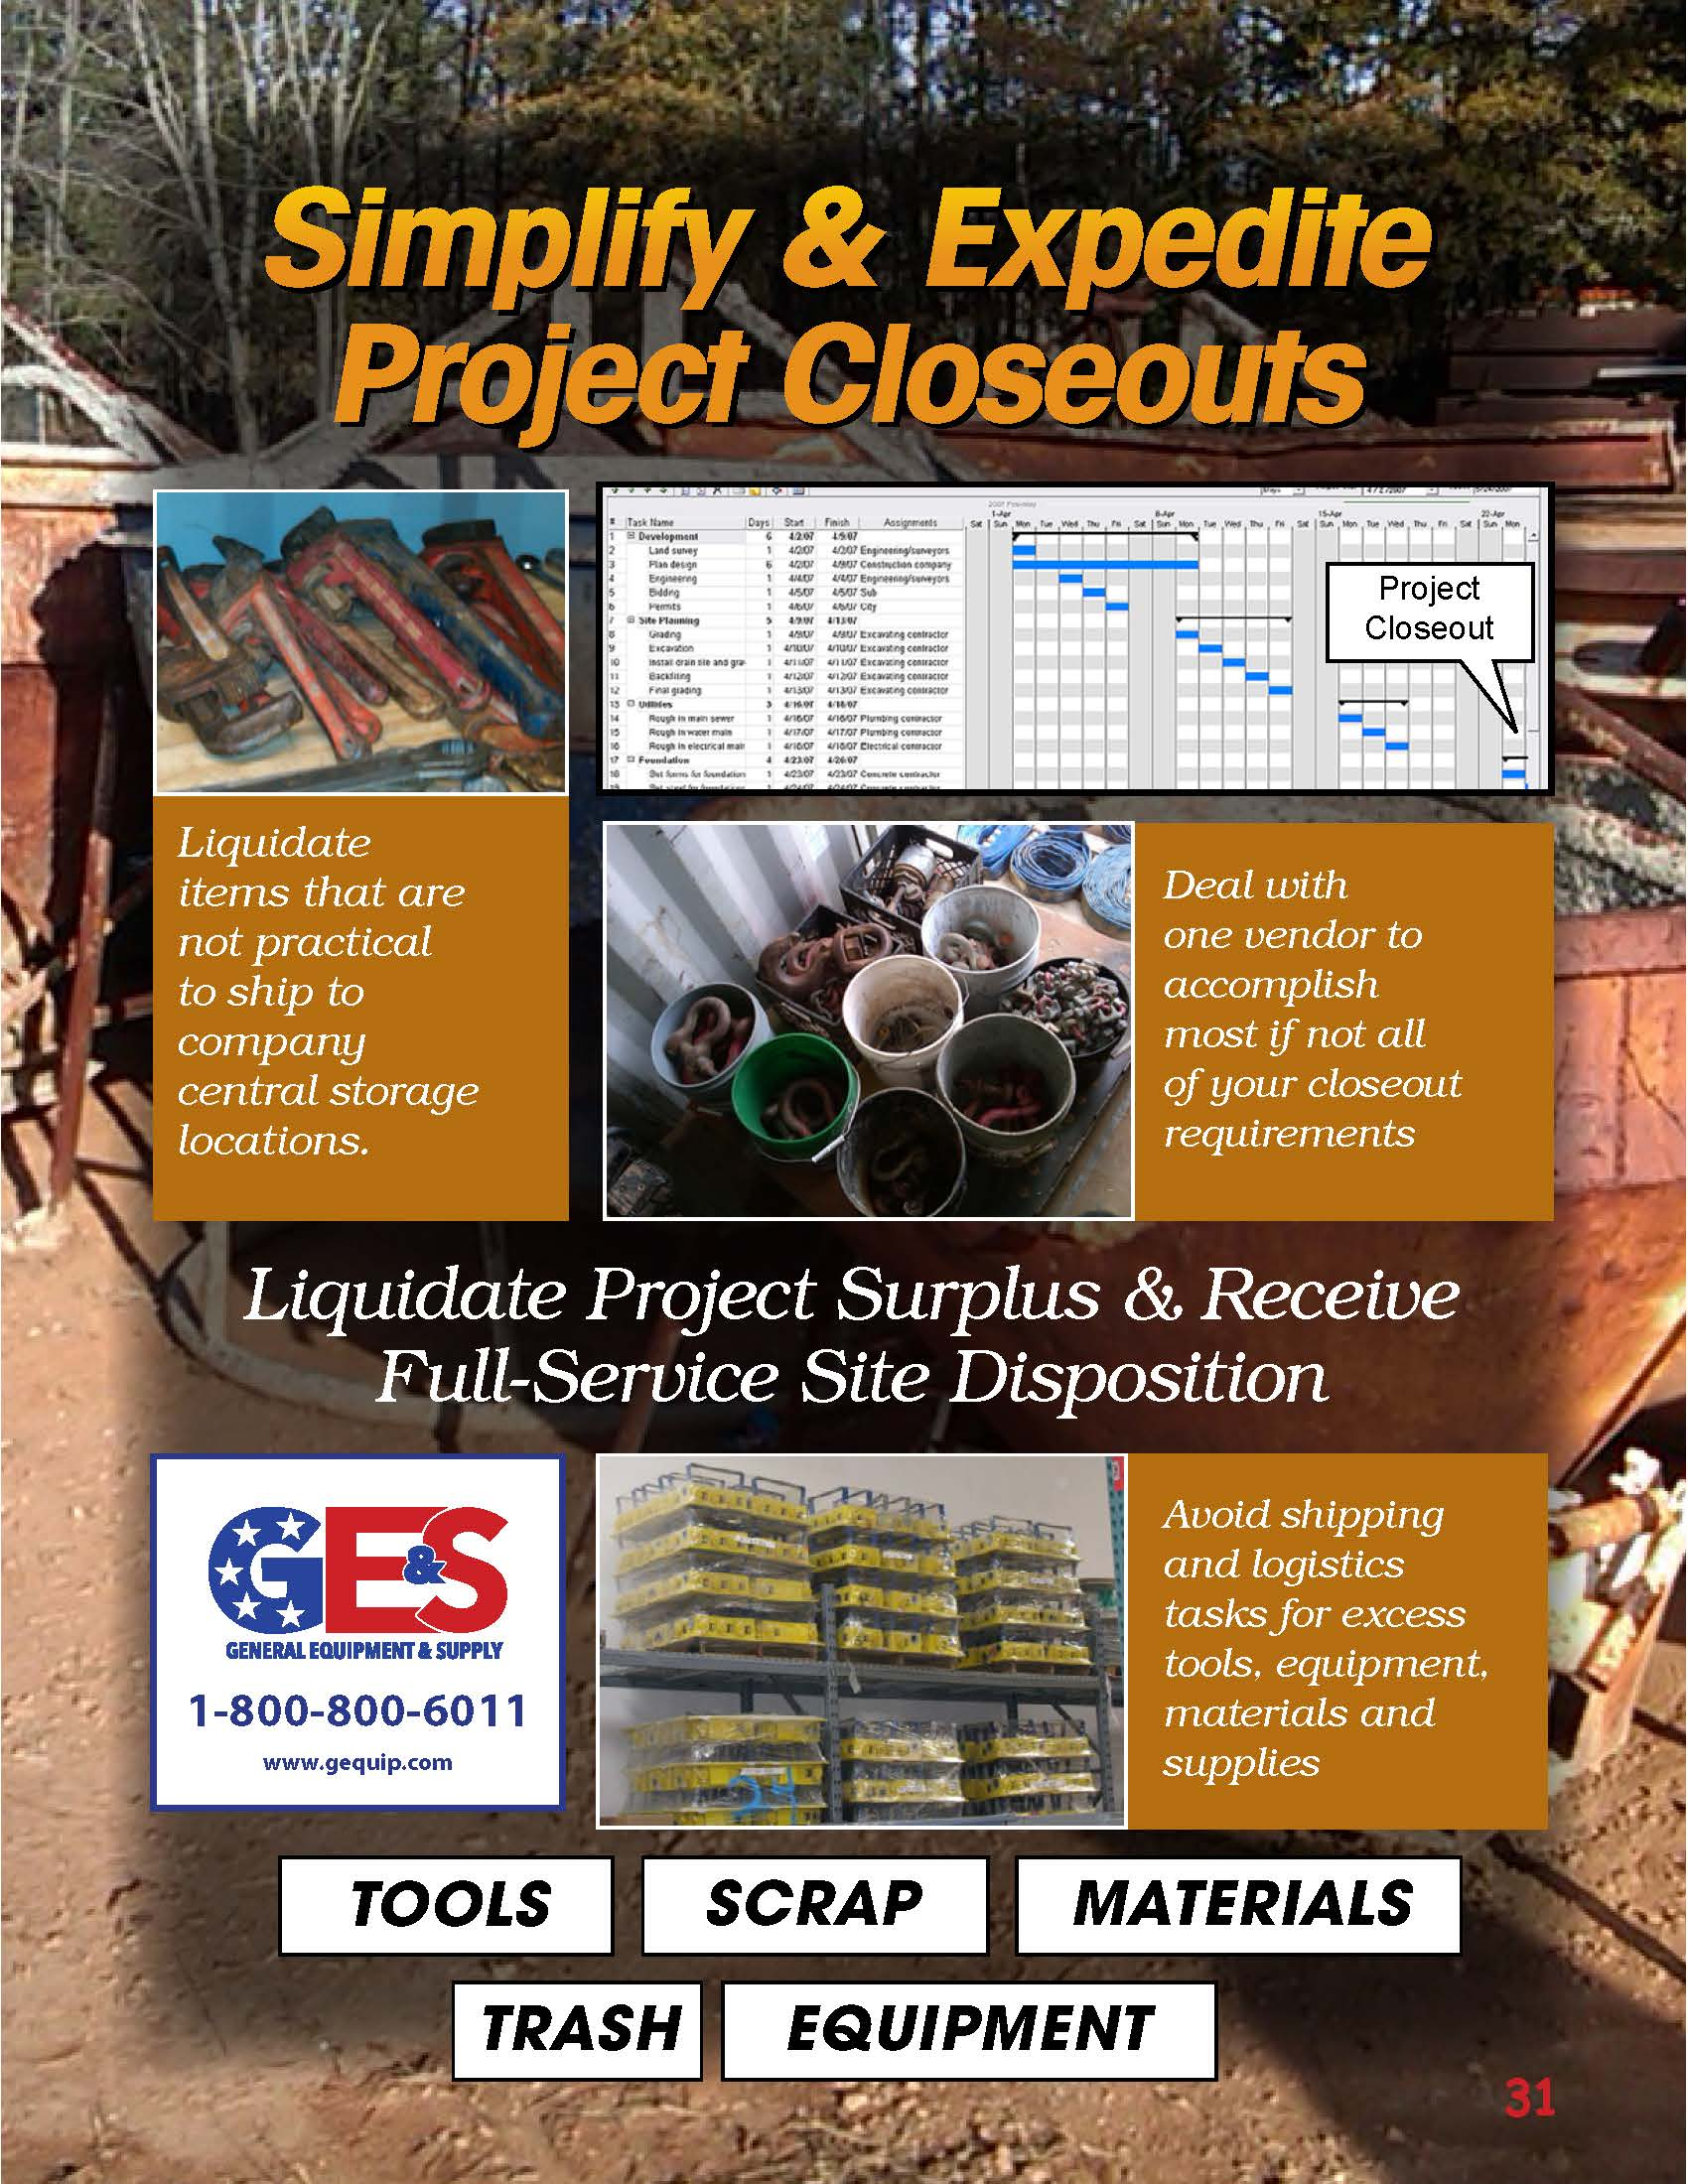 Simplify & Expedite Project Closeouts